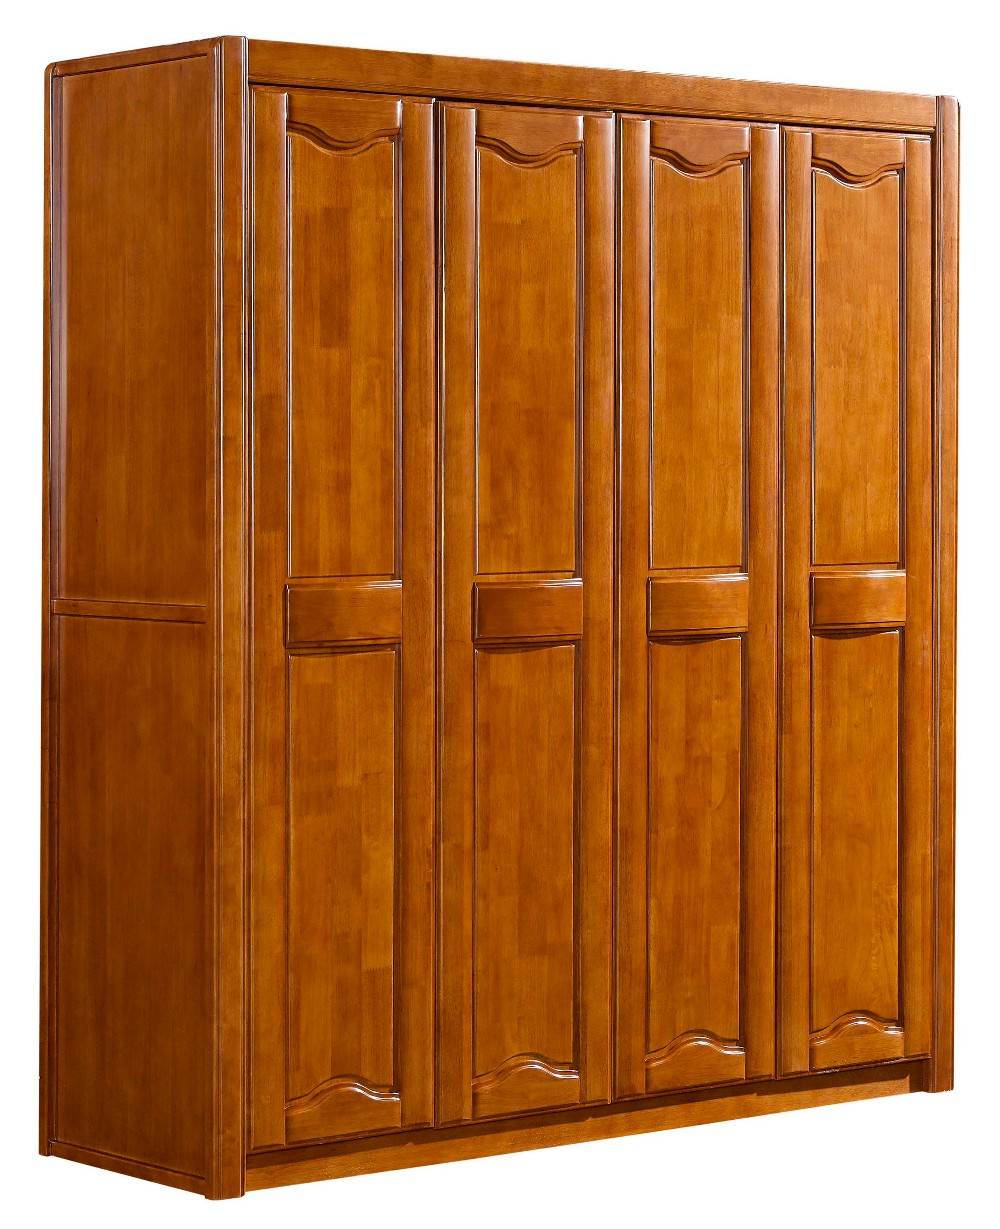 fifty solid thousand wood p carved oak hundred fiftysix wardrobe luck paragraph three six four